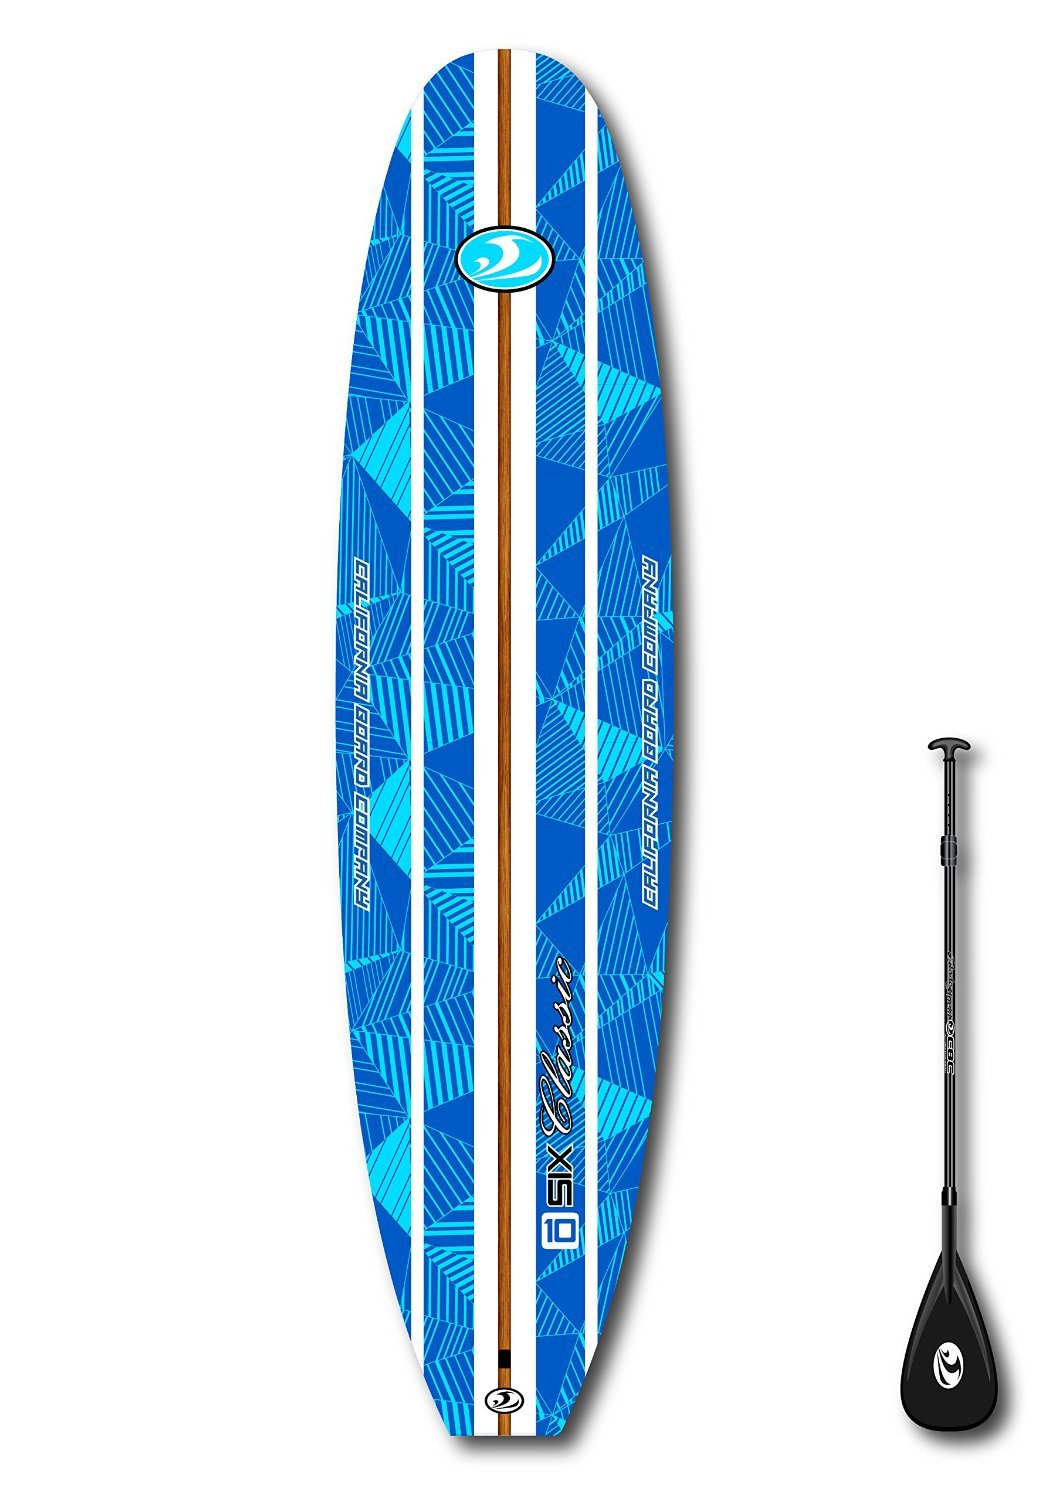 California Board Company (CBC) Stand up Paddle Board